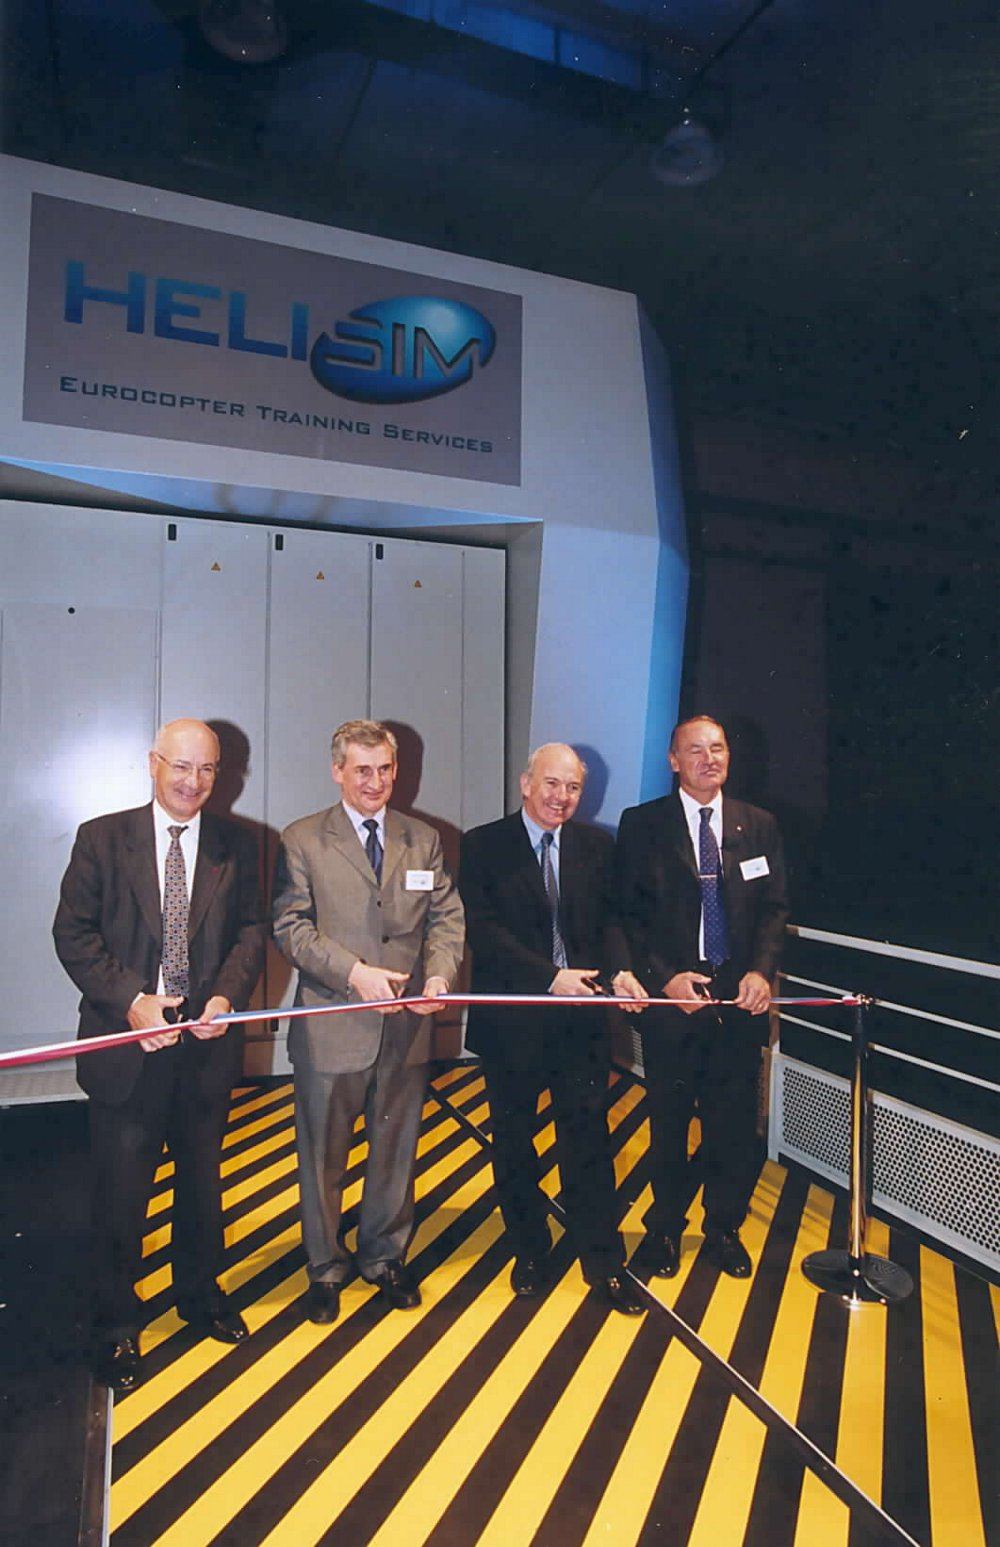 A traditional ribbon cutting during the 2002 inauguration ceremony for Helisim, the simulation centre located at Marseille-Provence International Airport in France.